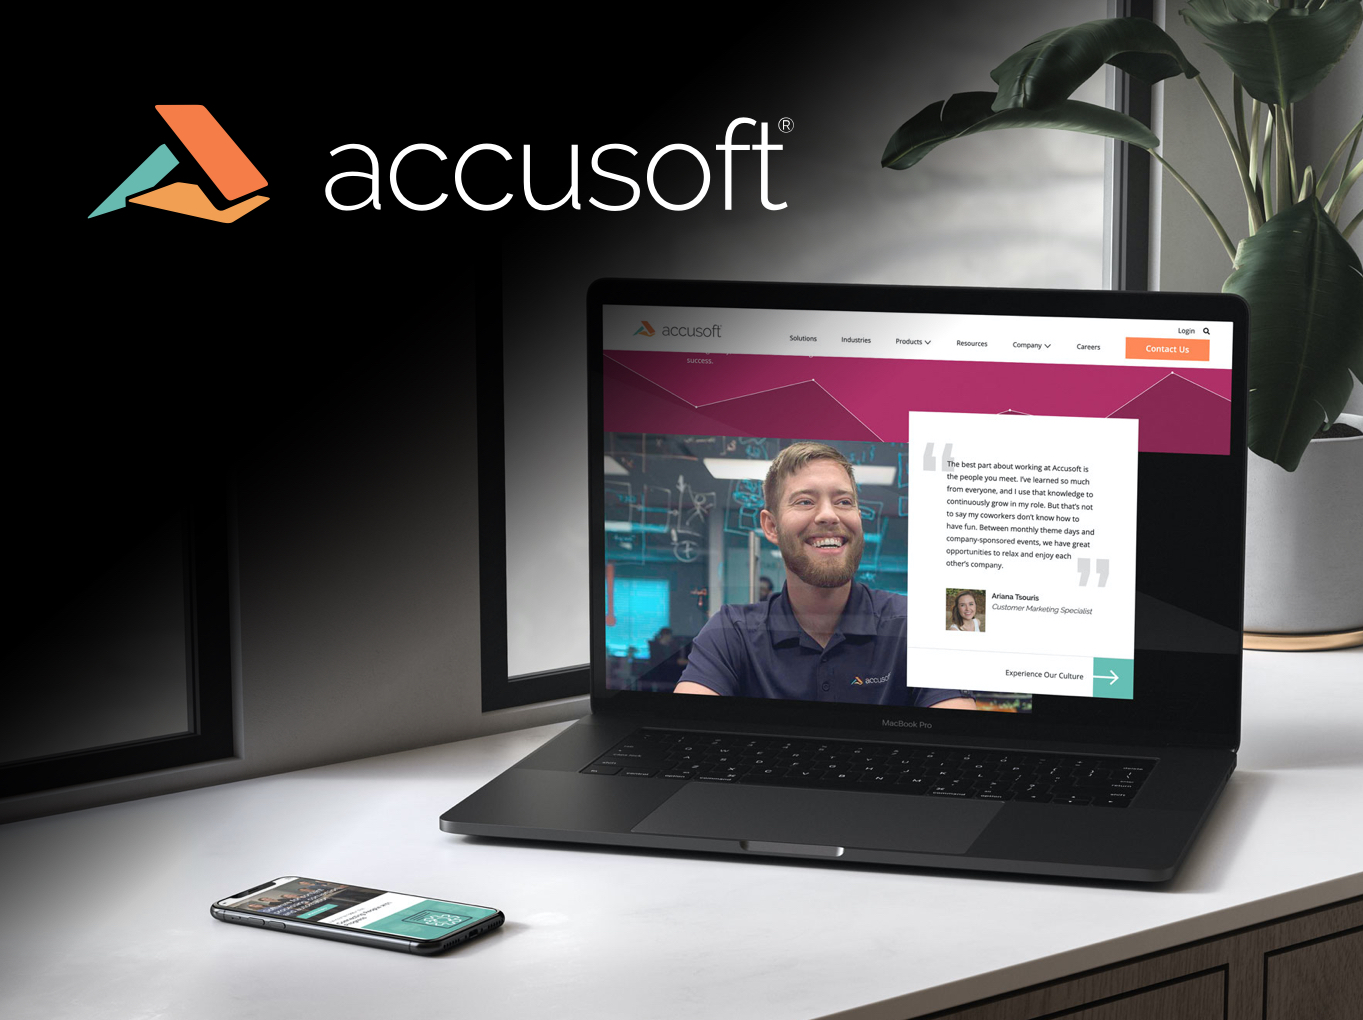 Accusoft feature image